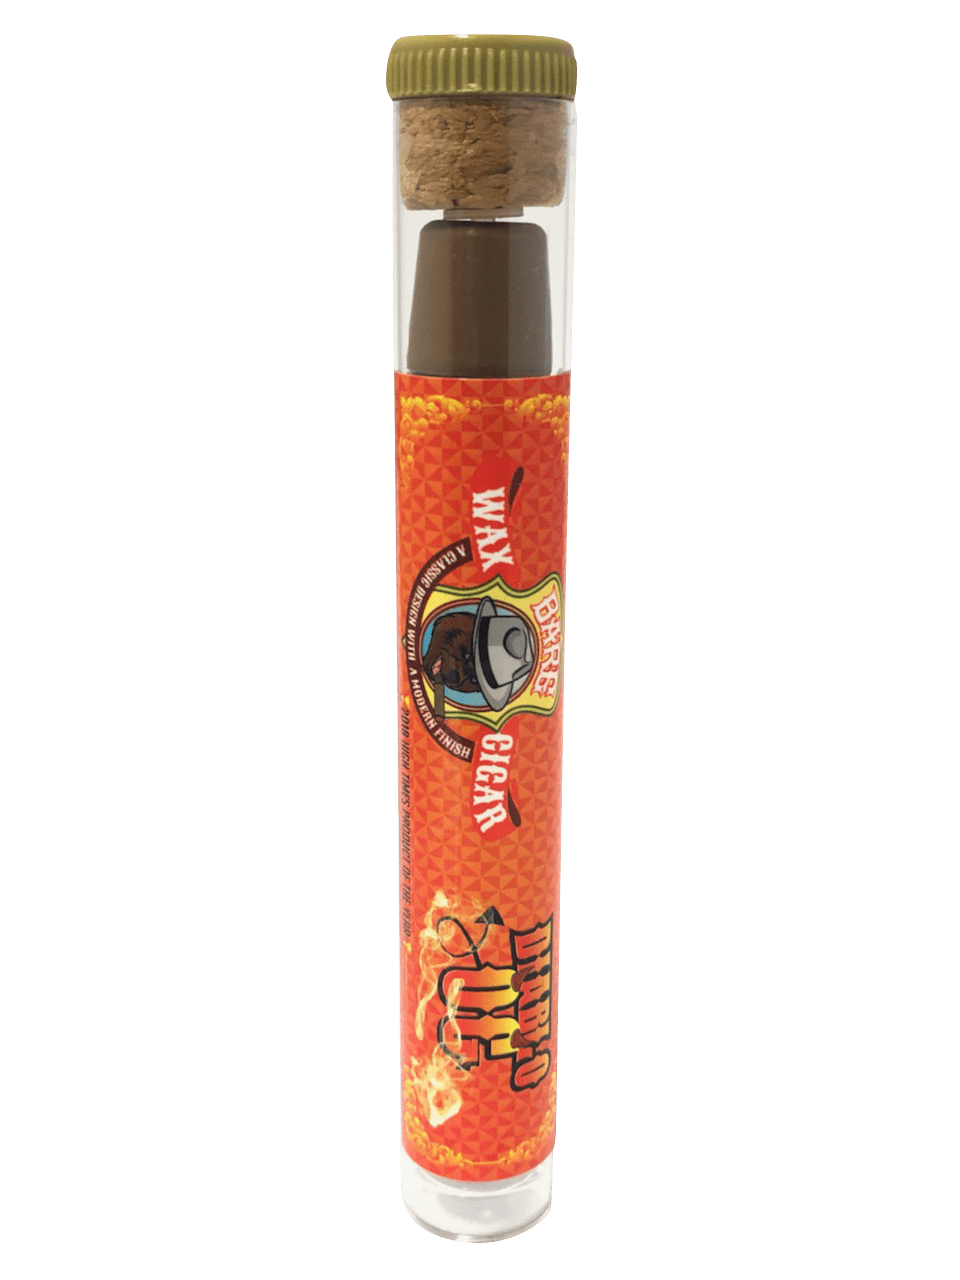 Barefarms Wax Cigar Diablo OG Disposable Vape - The Balloon Room